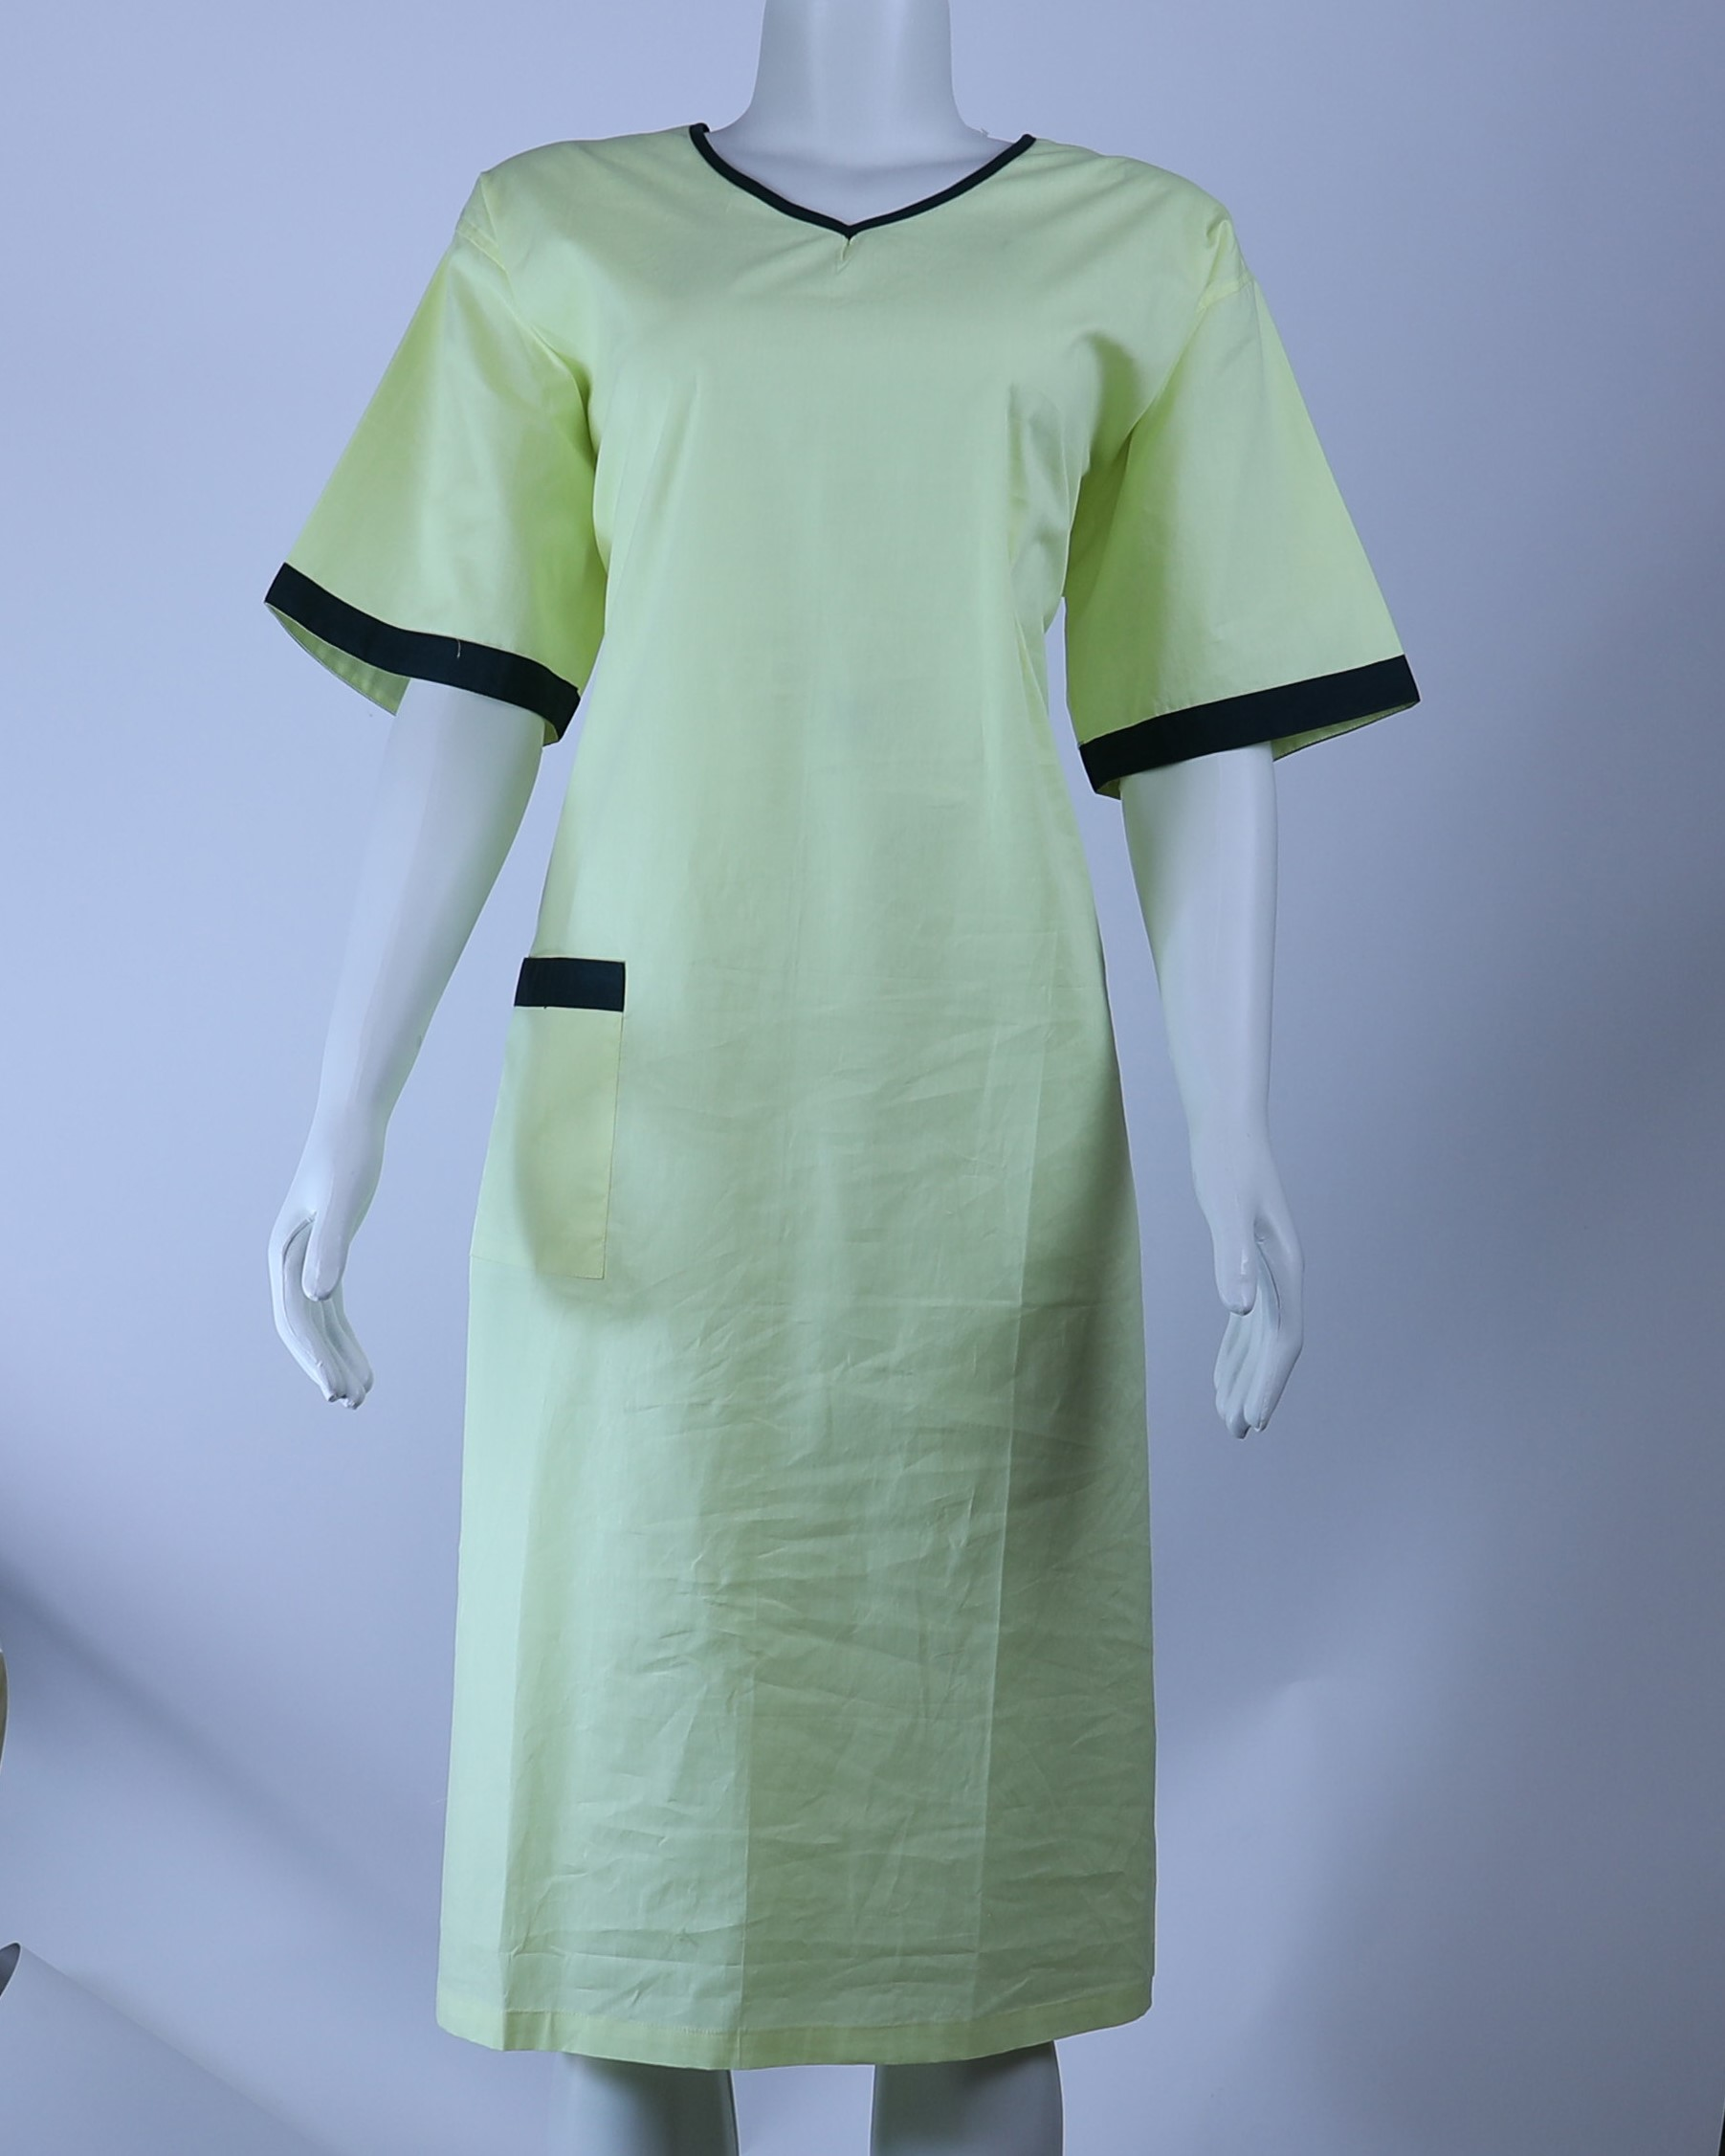 Exam Gown-B21